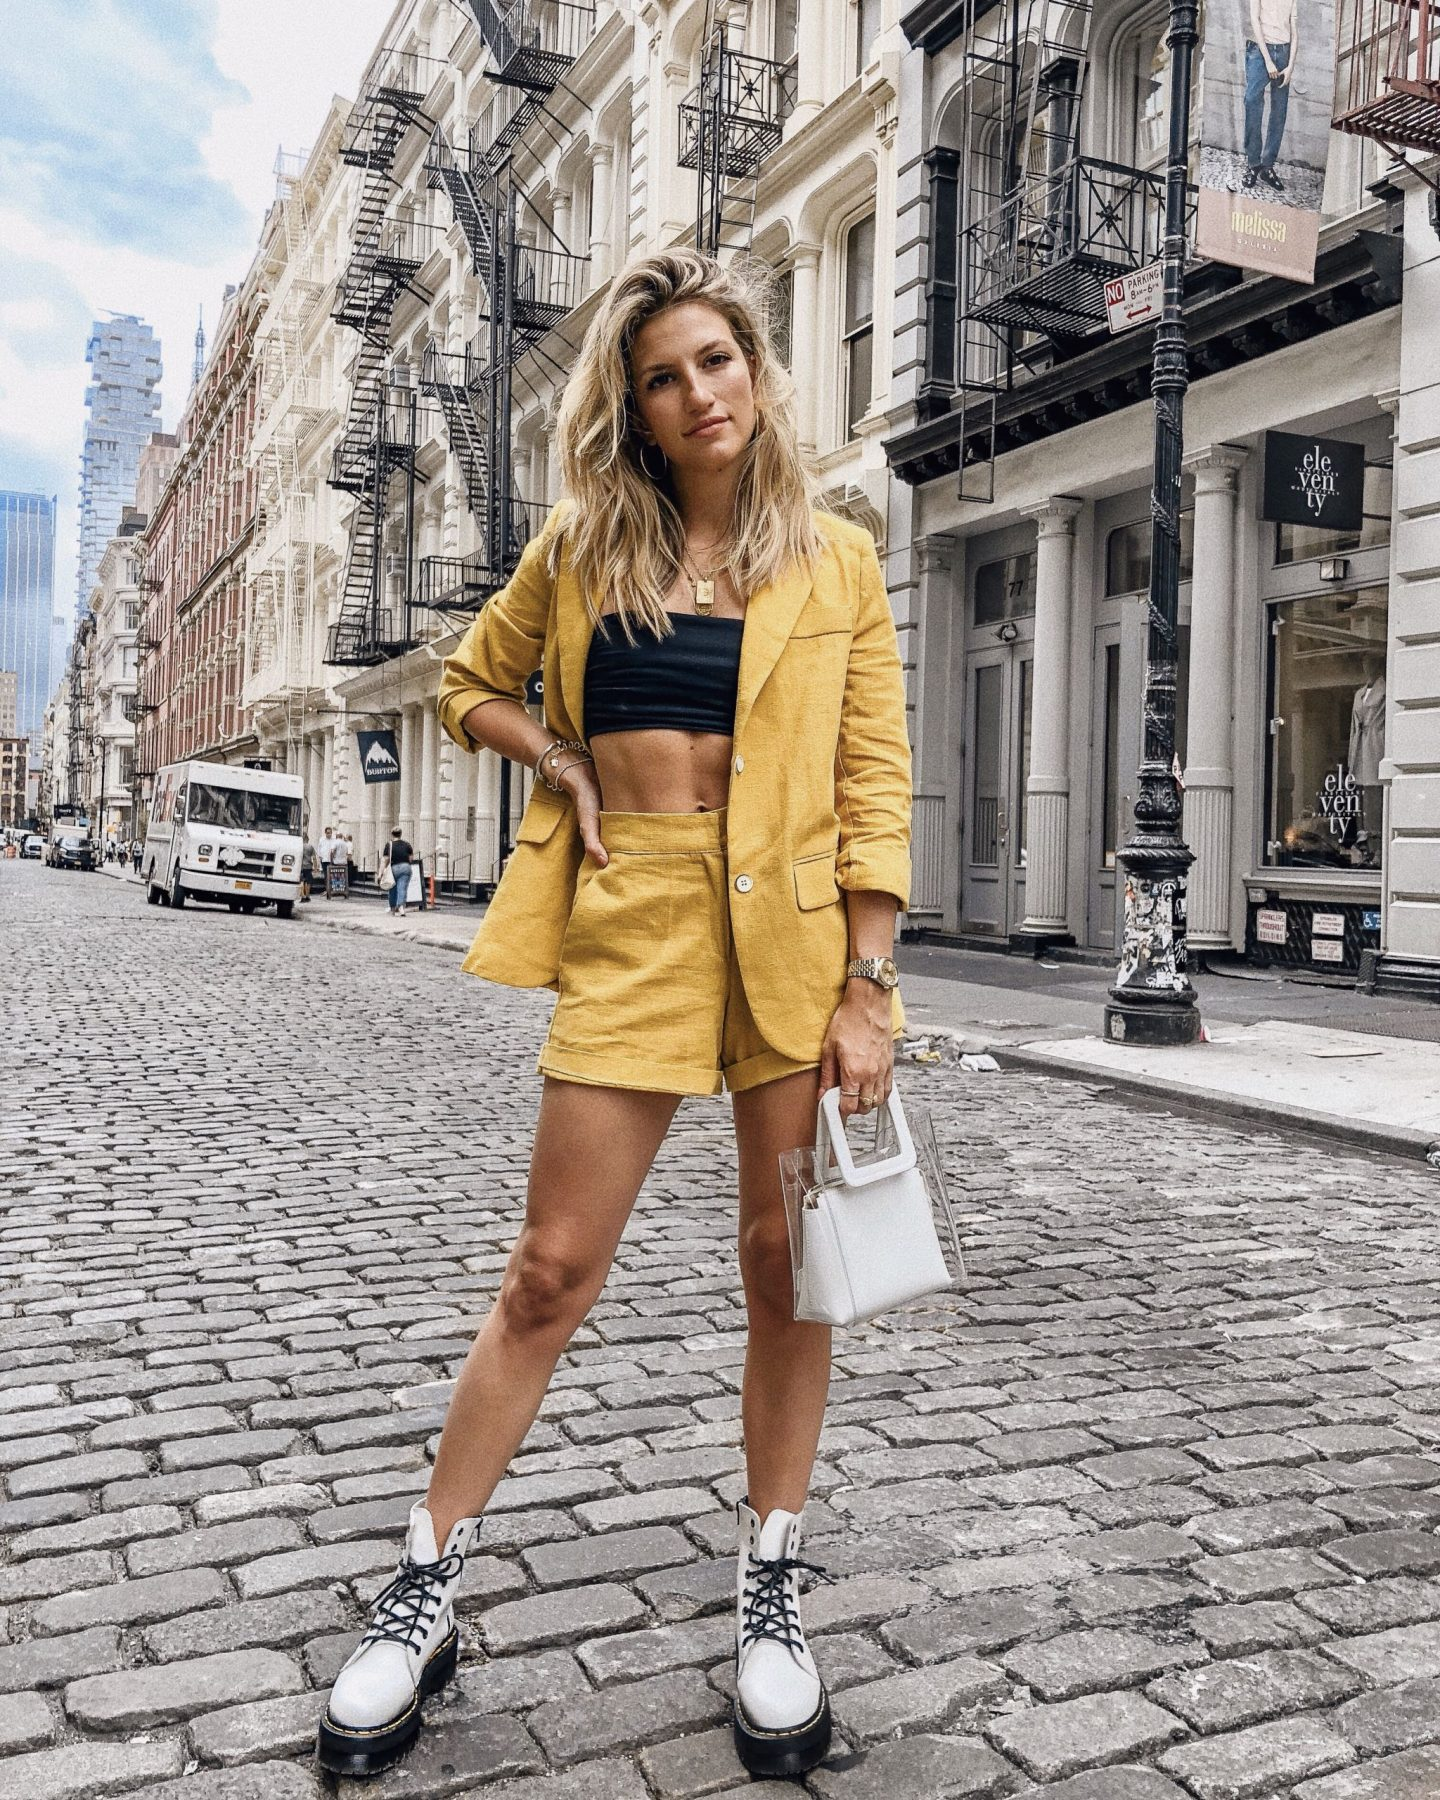 Cassandra DiMicco, Cass DiMicco, Dressed For Dreams, NYC, New York City, New York, Street Style NYC, Street Style 2018, NYC Street Style Street Style Outfits, 2018 Trends, NYC Fashion Blogger, NYC to do list, NYC to do, NYC bucket list, NYC Instagram Spots, Summer Style, Summer Outfit Inspo, 2018 Trends, SoHo, Dr Martens, Doc Martens, Doc Marten Jandon, Platform Doc Martens, Yellow Suit Set, Matching Set, Transparent Purse, Street Style